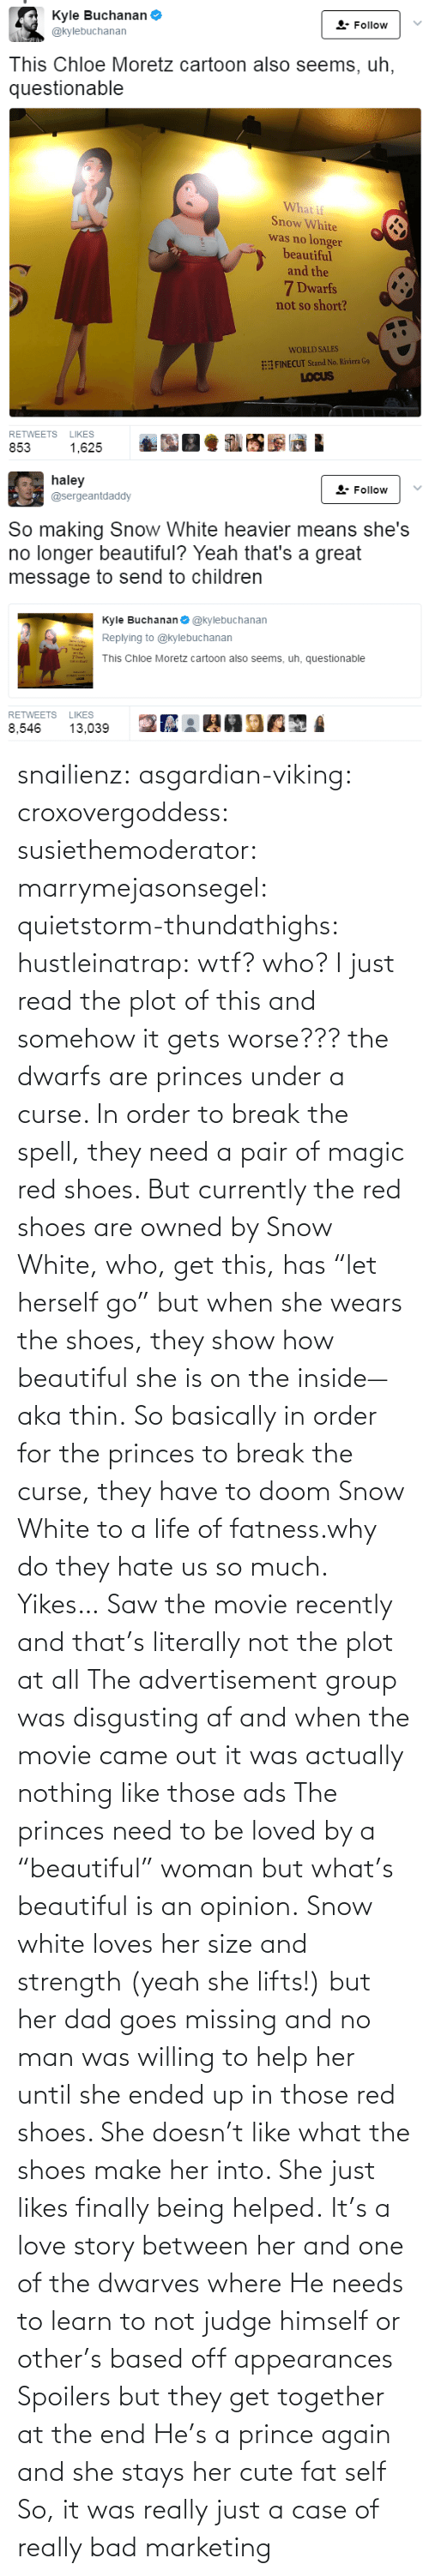 "disgusting: snailienz: asgardian-viking:  croxovergoddess:  susiethemoderator:  marrymejasonsegel:   quietstorm-thundathighs:  hustleinatrap: wtf?  who?   I just read the plot of this and somehow it gets worse??? the dwarfs are princes under a curse. In order to break the spell, they need a pair of magic red shoes. But currently the red shoes are owned by Snow White, who, get this, has ""let herself go"" but when she wears the shoes, they show how beautiful she is on the inside—aka thin. So basically in order for the princes to break the curse, they have to doom Snow White to a life of fatness.why do they hate us so much.   Yikes…    Saw the movie recently and that's literally not the plot at all The advertisement group was disgusting af and when the movie came out it was actually nothing like those ads The princes need to be loved by a ""beautiful"" woman but what's beautiful is an opinion. Snow white loves her size and strength (yeah she lifts!) but her dad goes missing and no man was willing to help her until she ended up in those red shoes. She doesn't like what the shoes make her into. She just likes finally being helped. It's a love story between her and one of the dwarves where He needs to learn to not judge himself or other's based off appearances  Spoilers but they get together at the end He's a prince again and she stays her cute fat self  So, it was really just a case of really bad marketing"